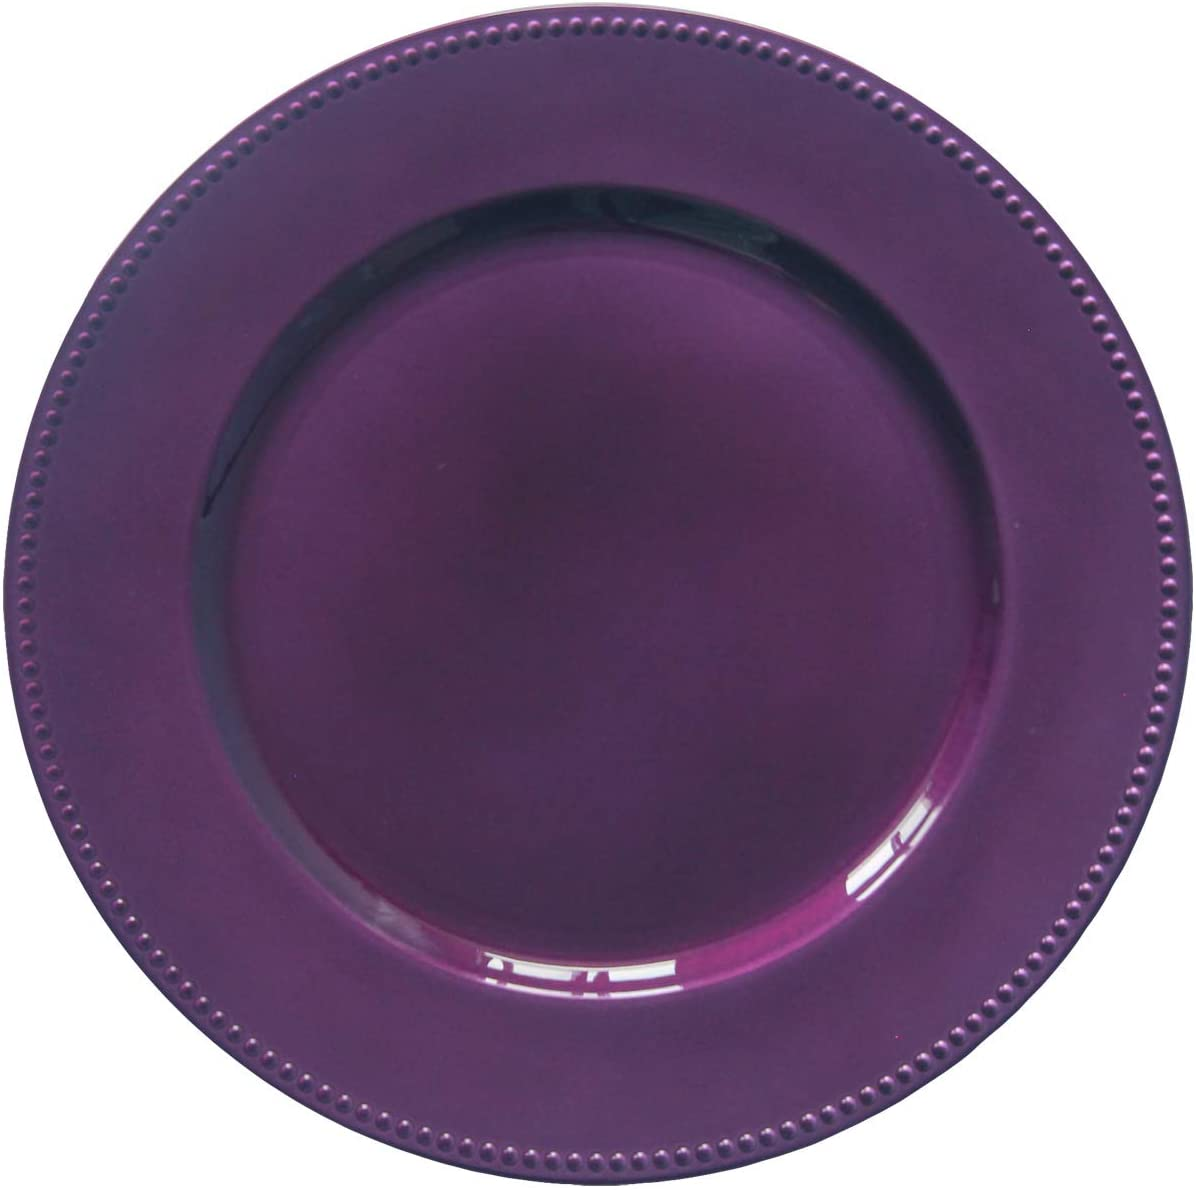 Purple Plastic Beaded Charger Plates - 12 pcs 13 Inch Round Wedding Party Decroation Charger Plates (Purple, 12)